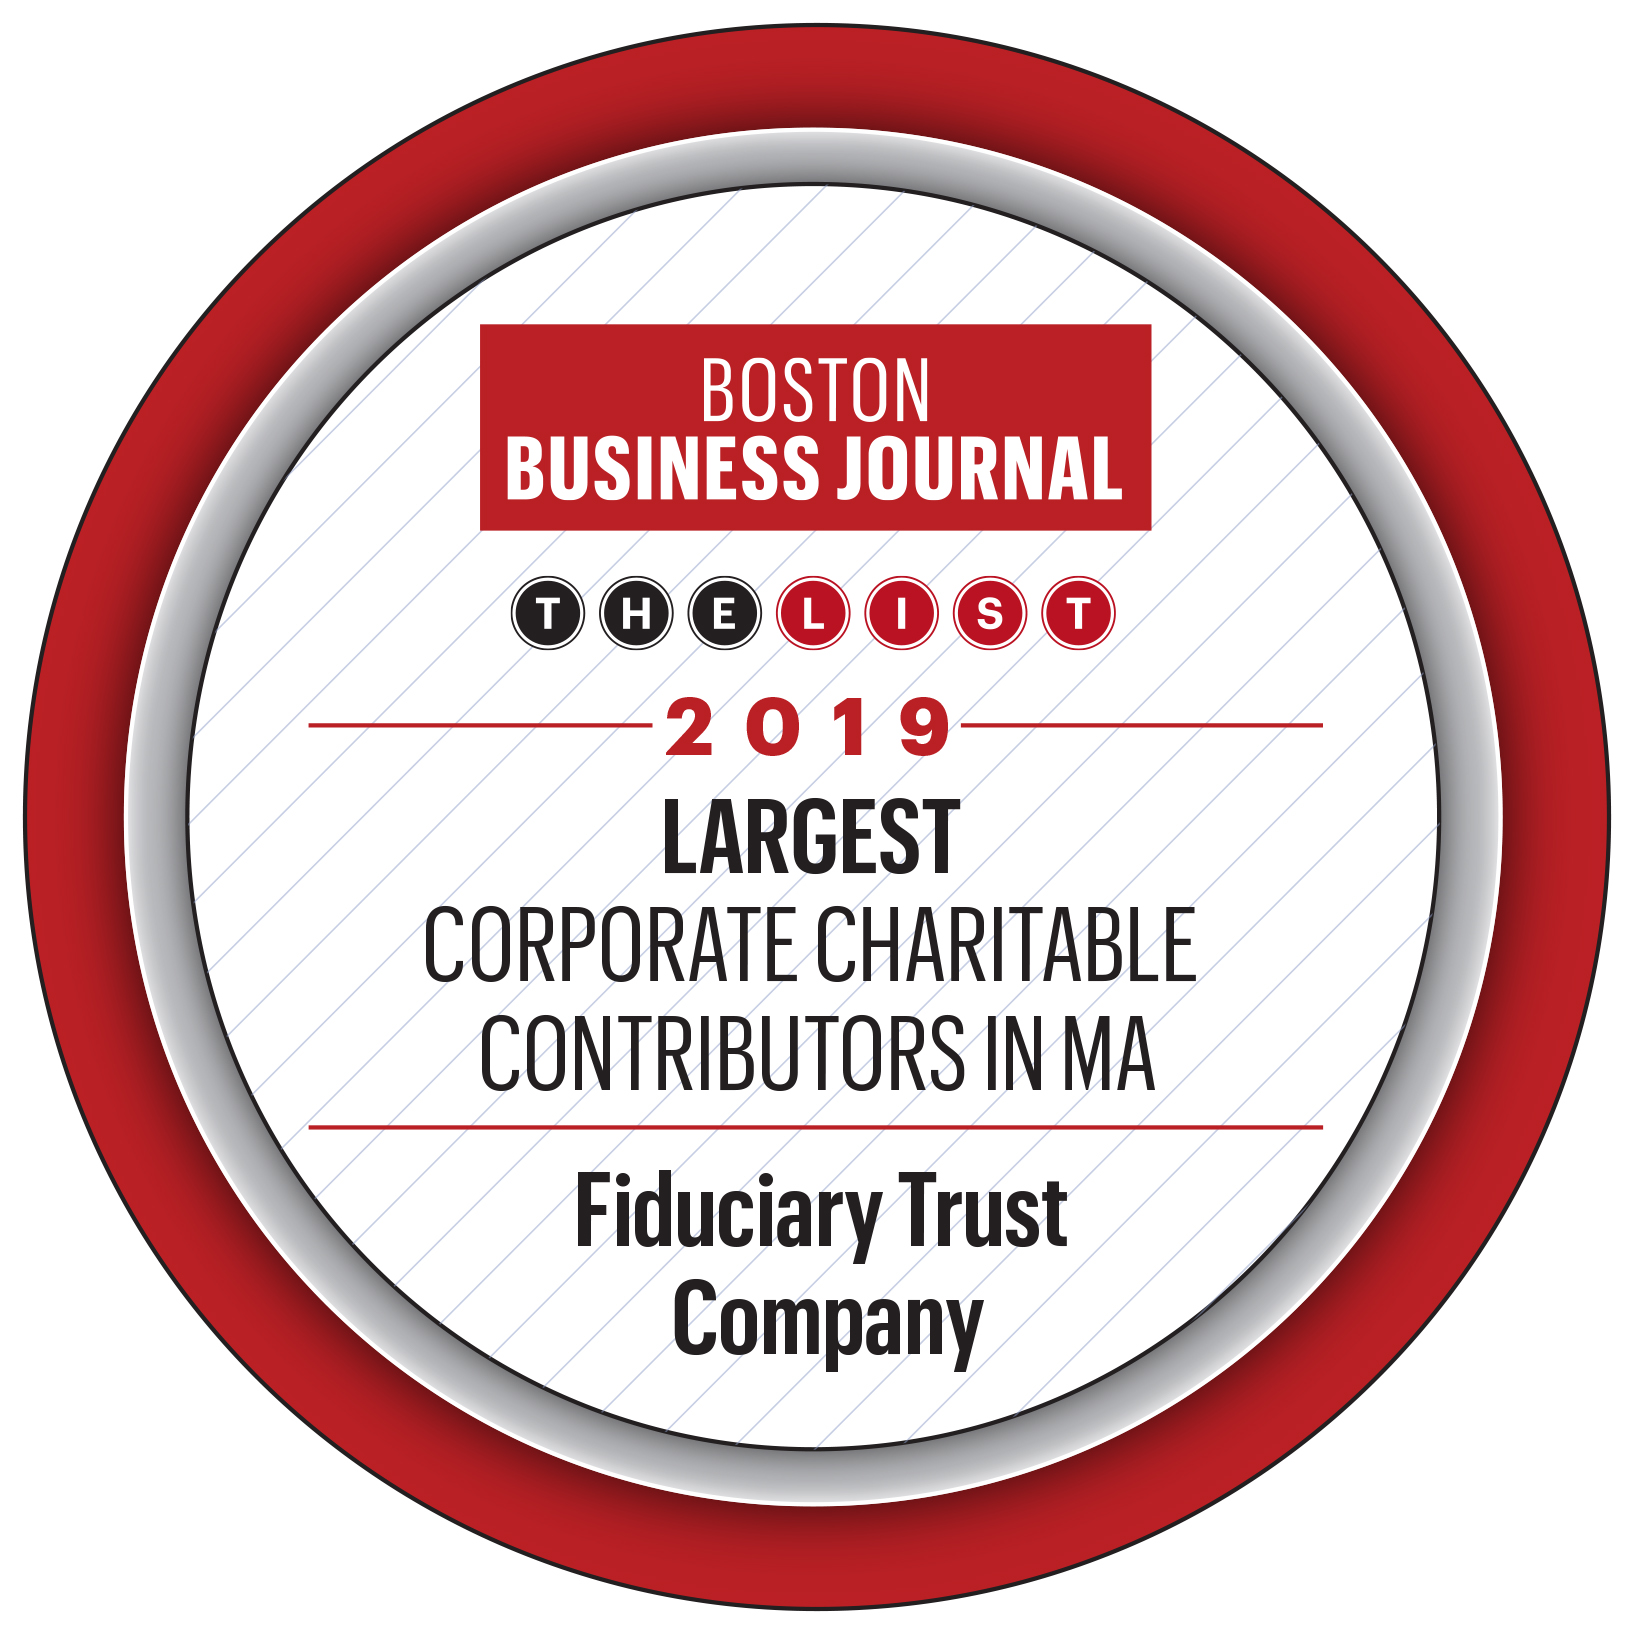 Fiduciary Trust is a 2019 BBJ Top Charitable Contributor